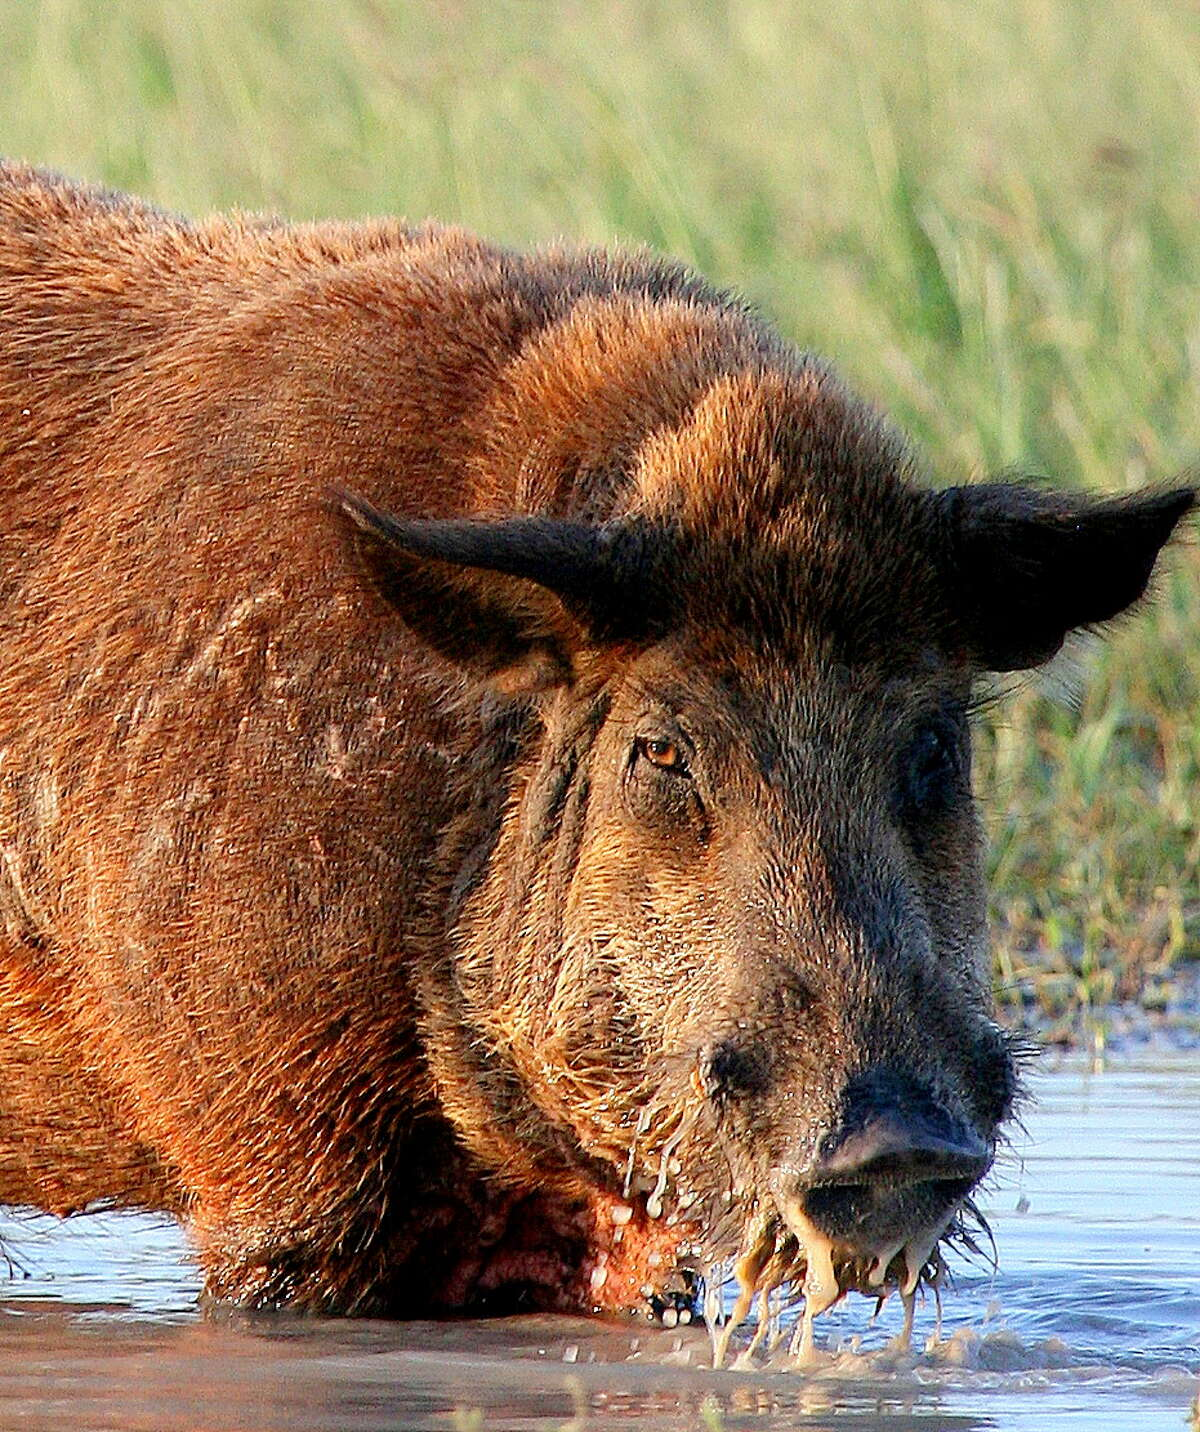 Feral hogs cause as much as $400 million in damage to private property in Texas each year.